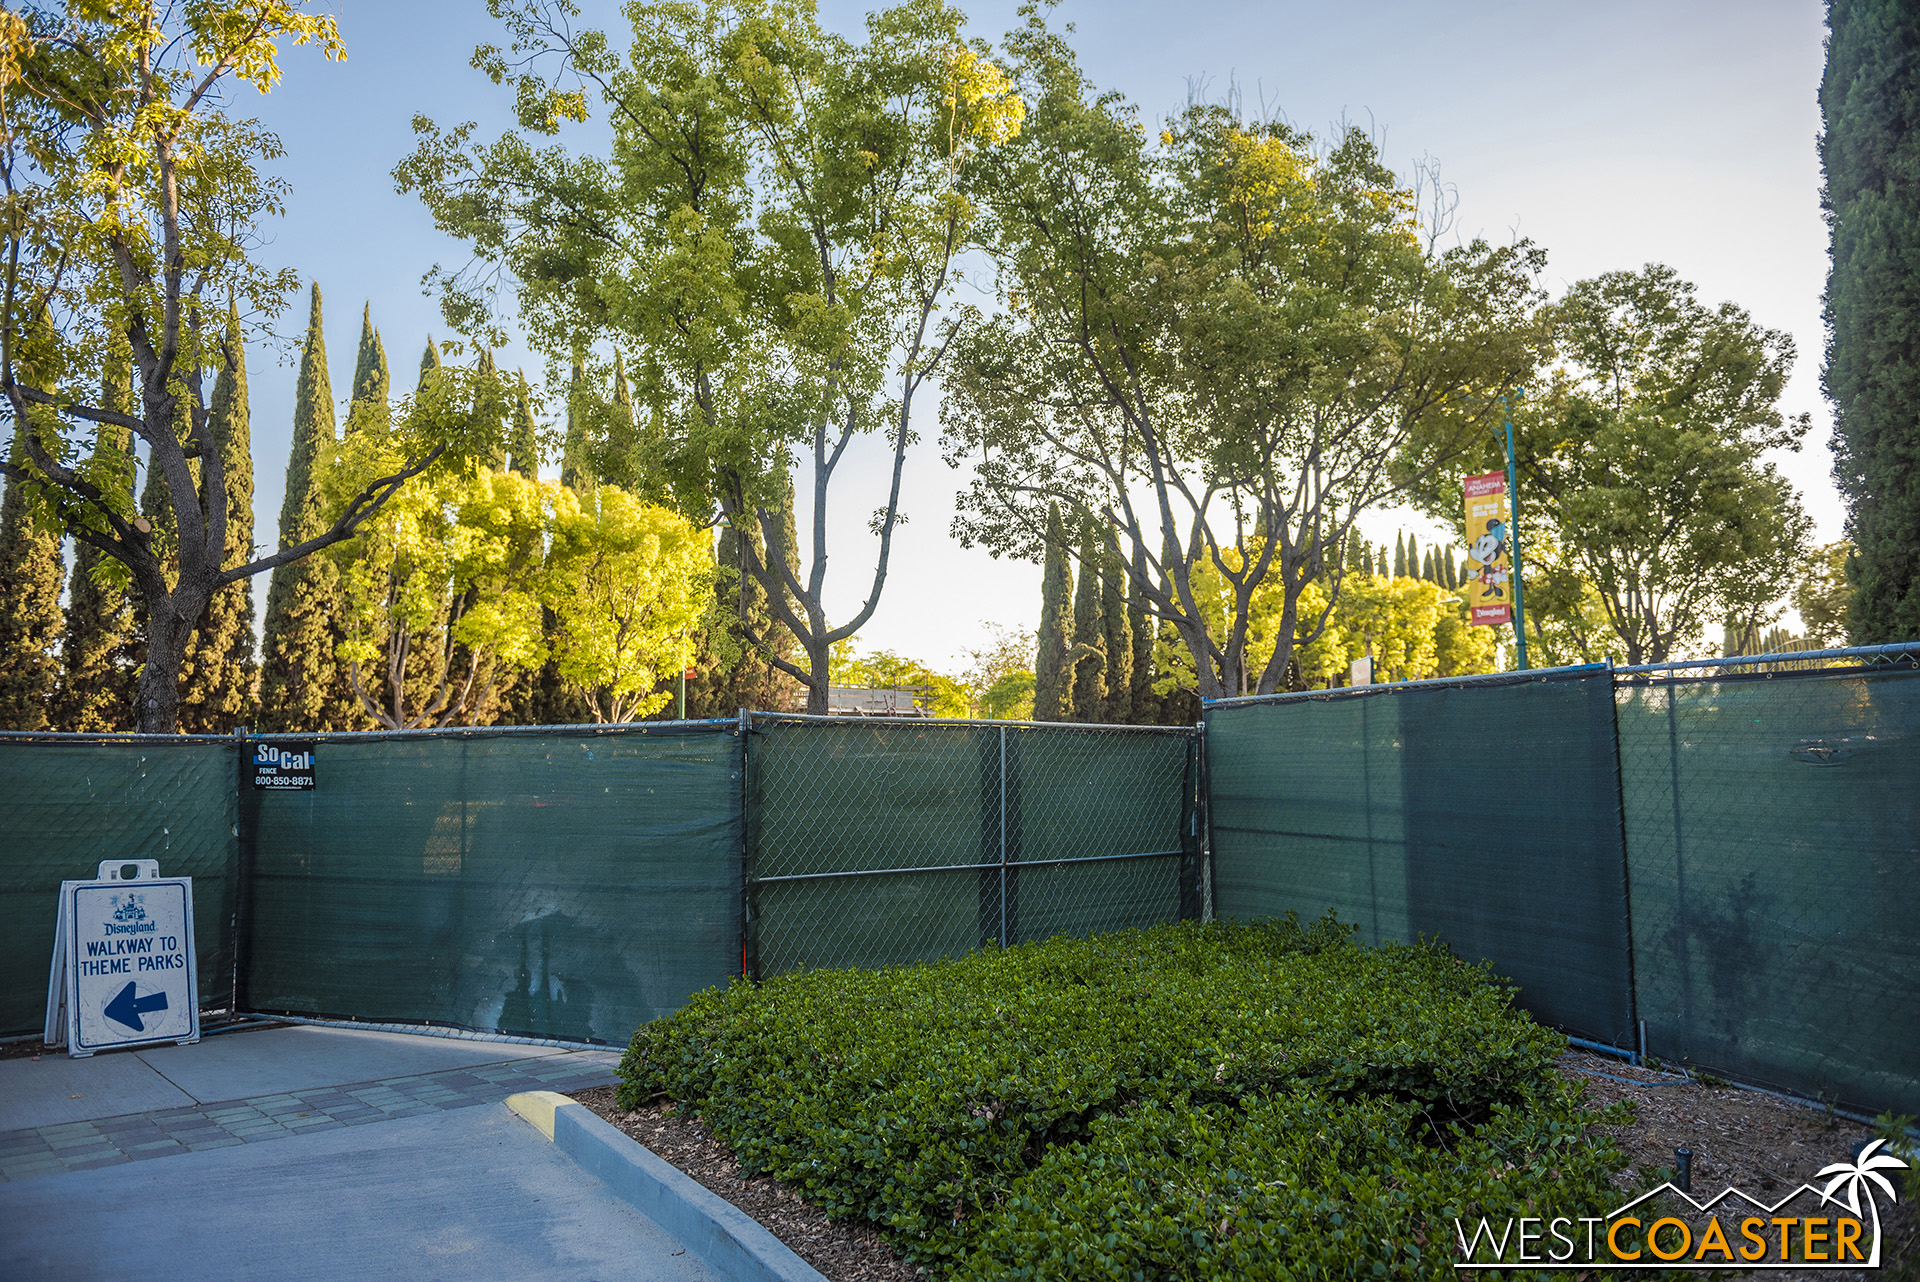 The walking path to Downtown Disney has been re-routed across Magic Way now.